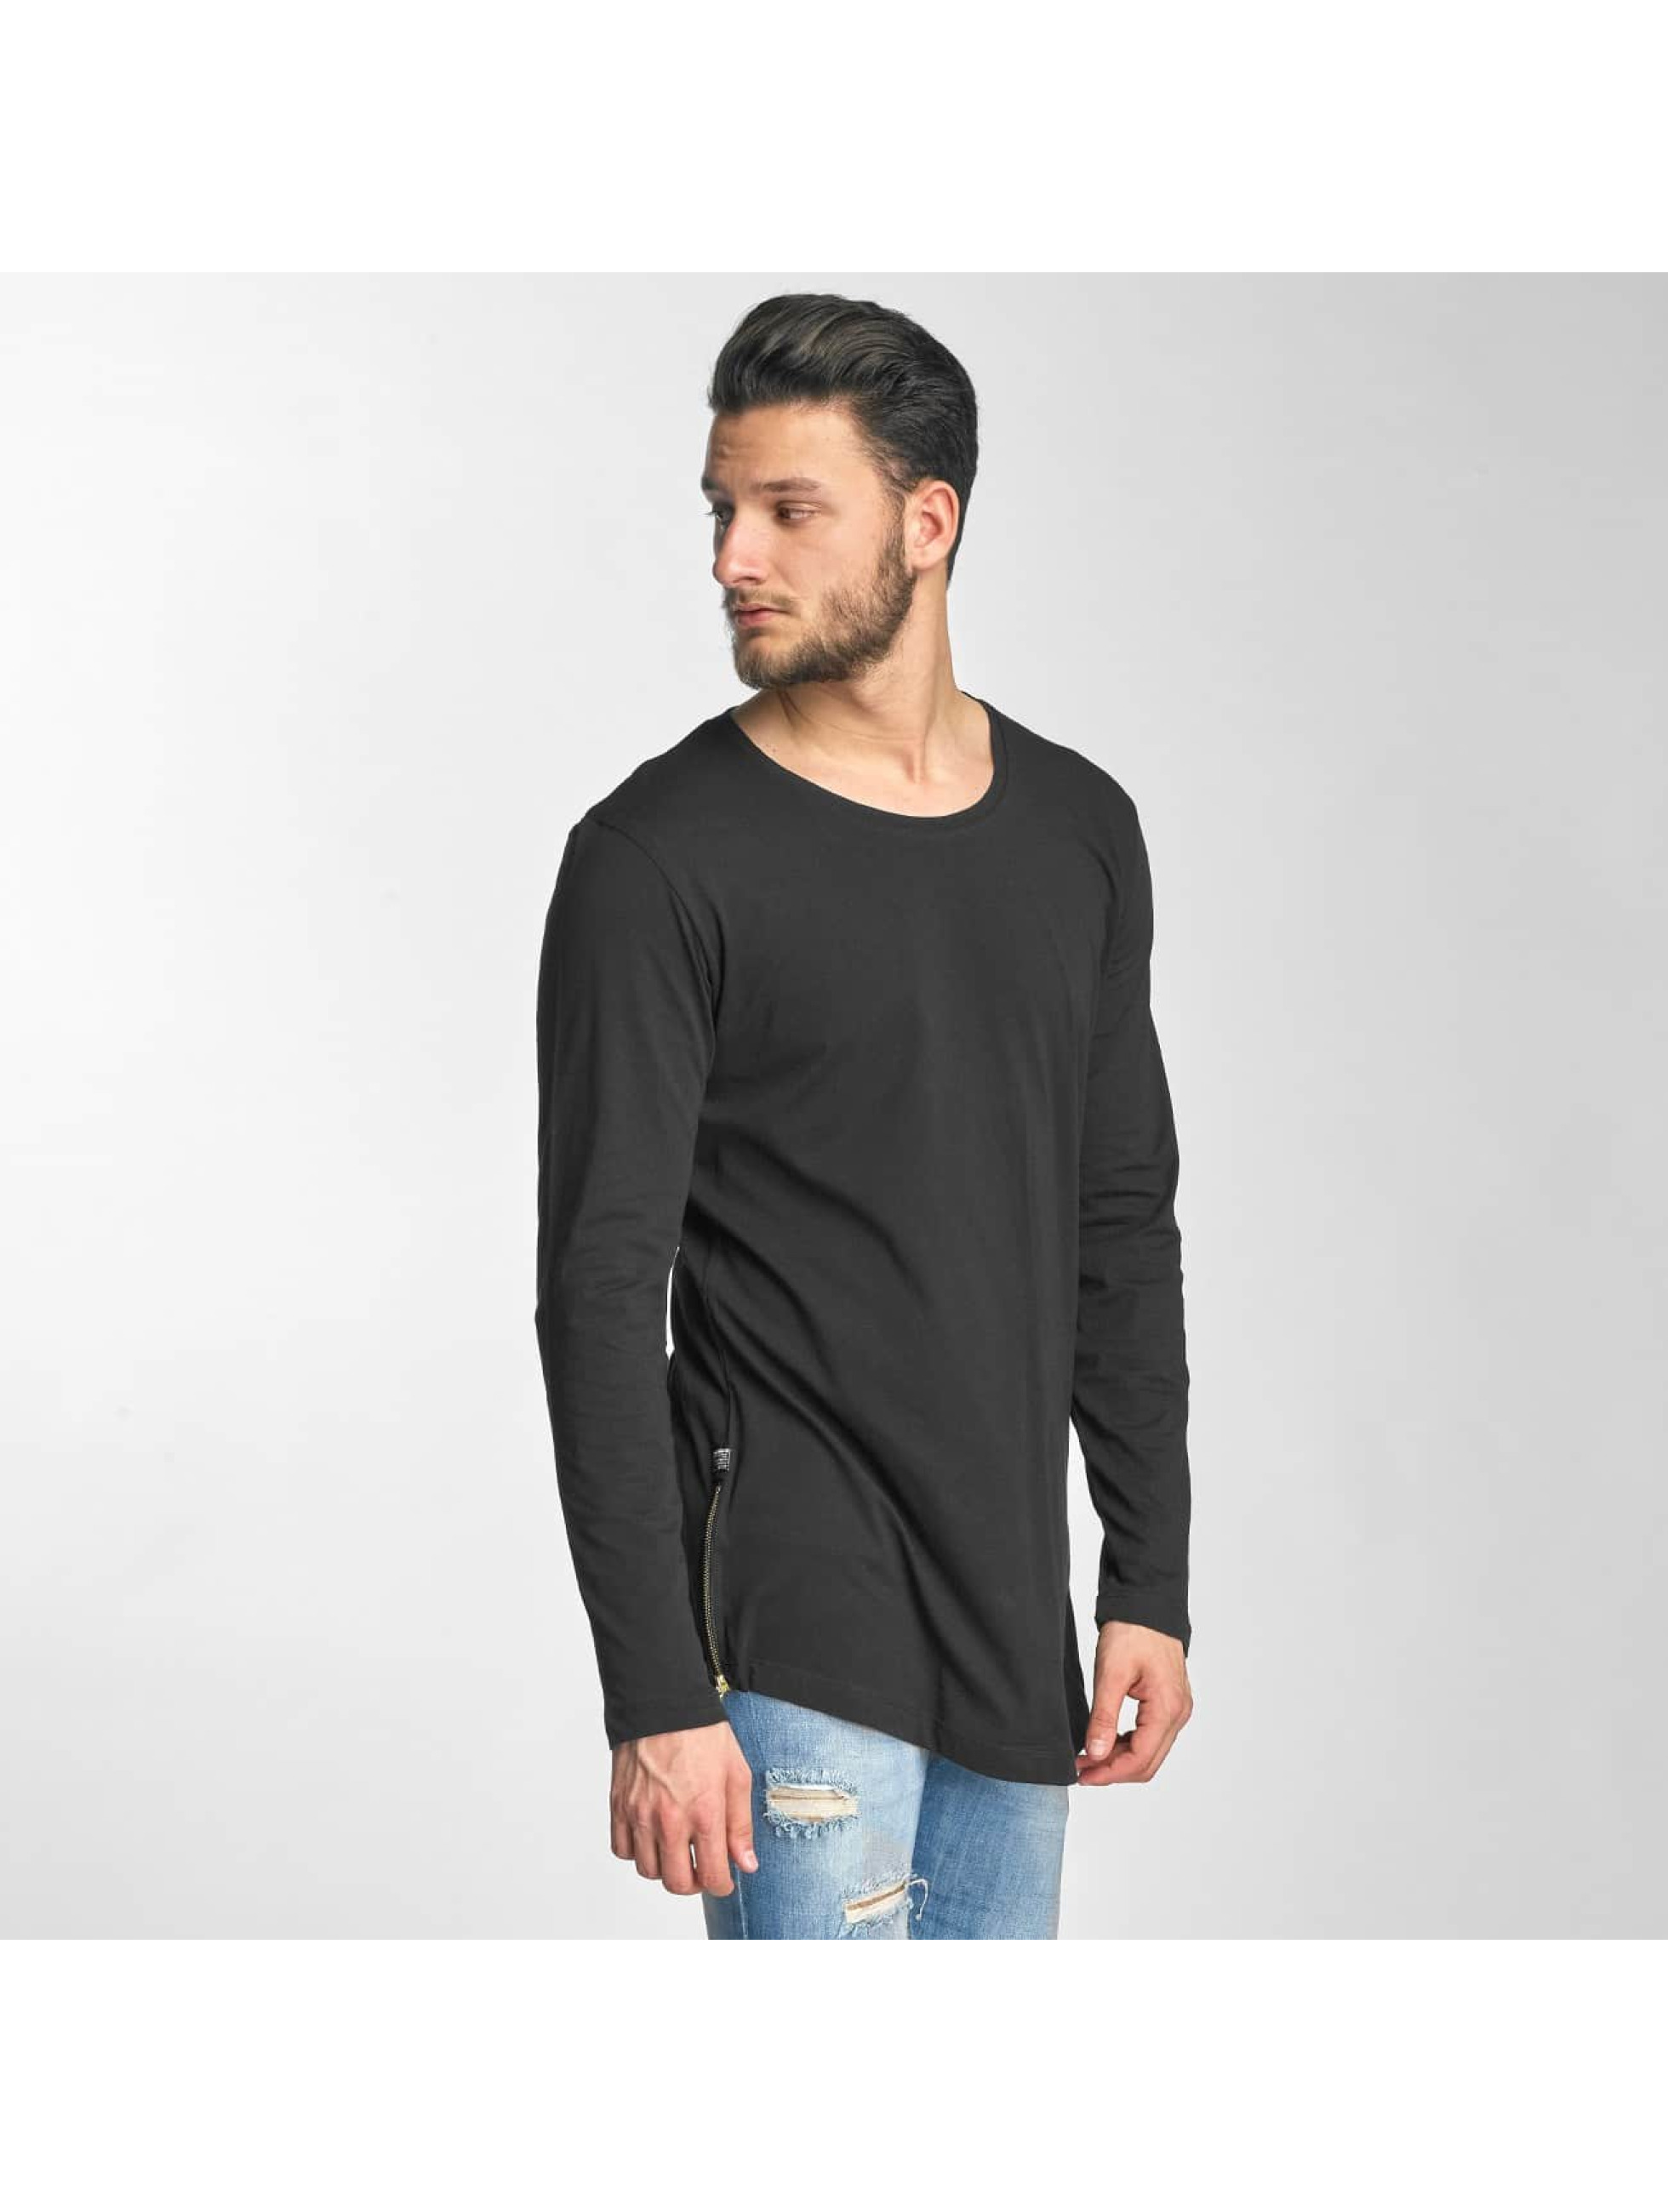 Red Bridge Longsleeve Taschkent black